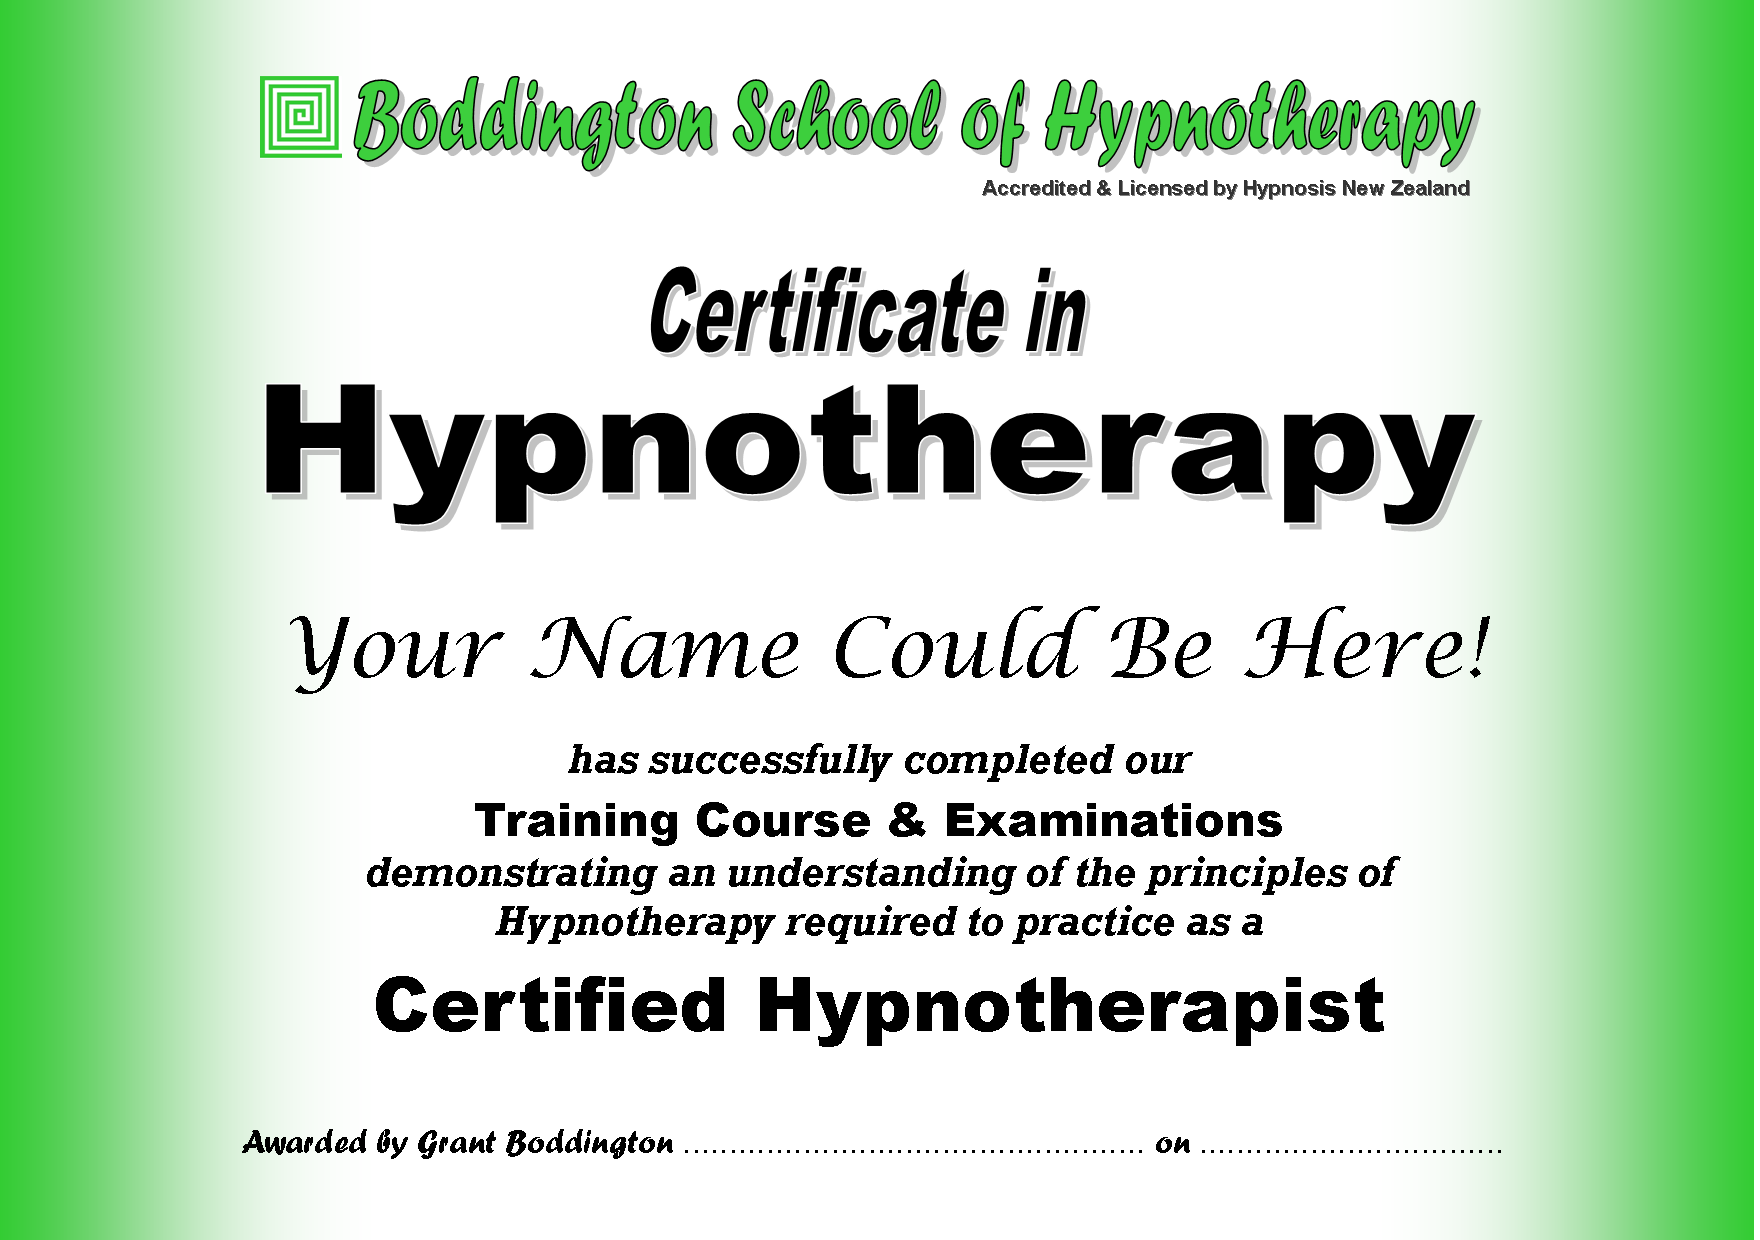 Qualification: Certificate in                                 Hypnotherapy